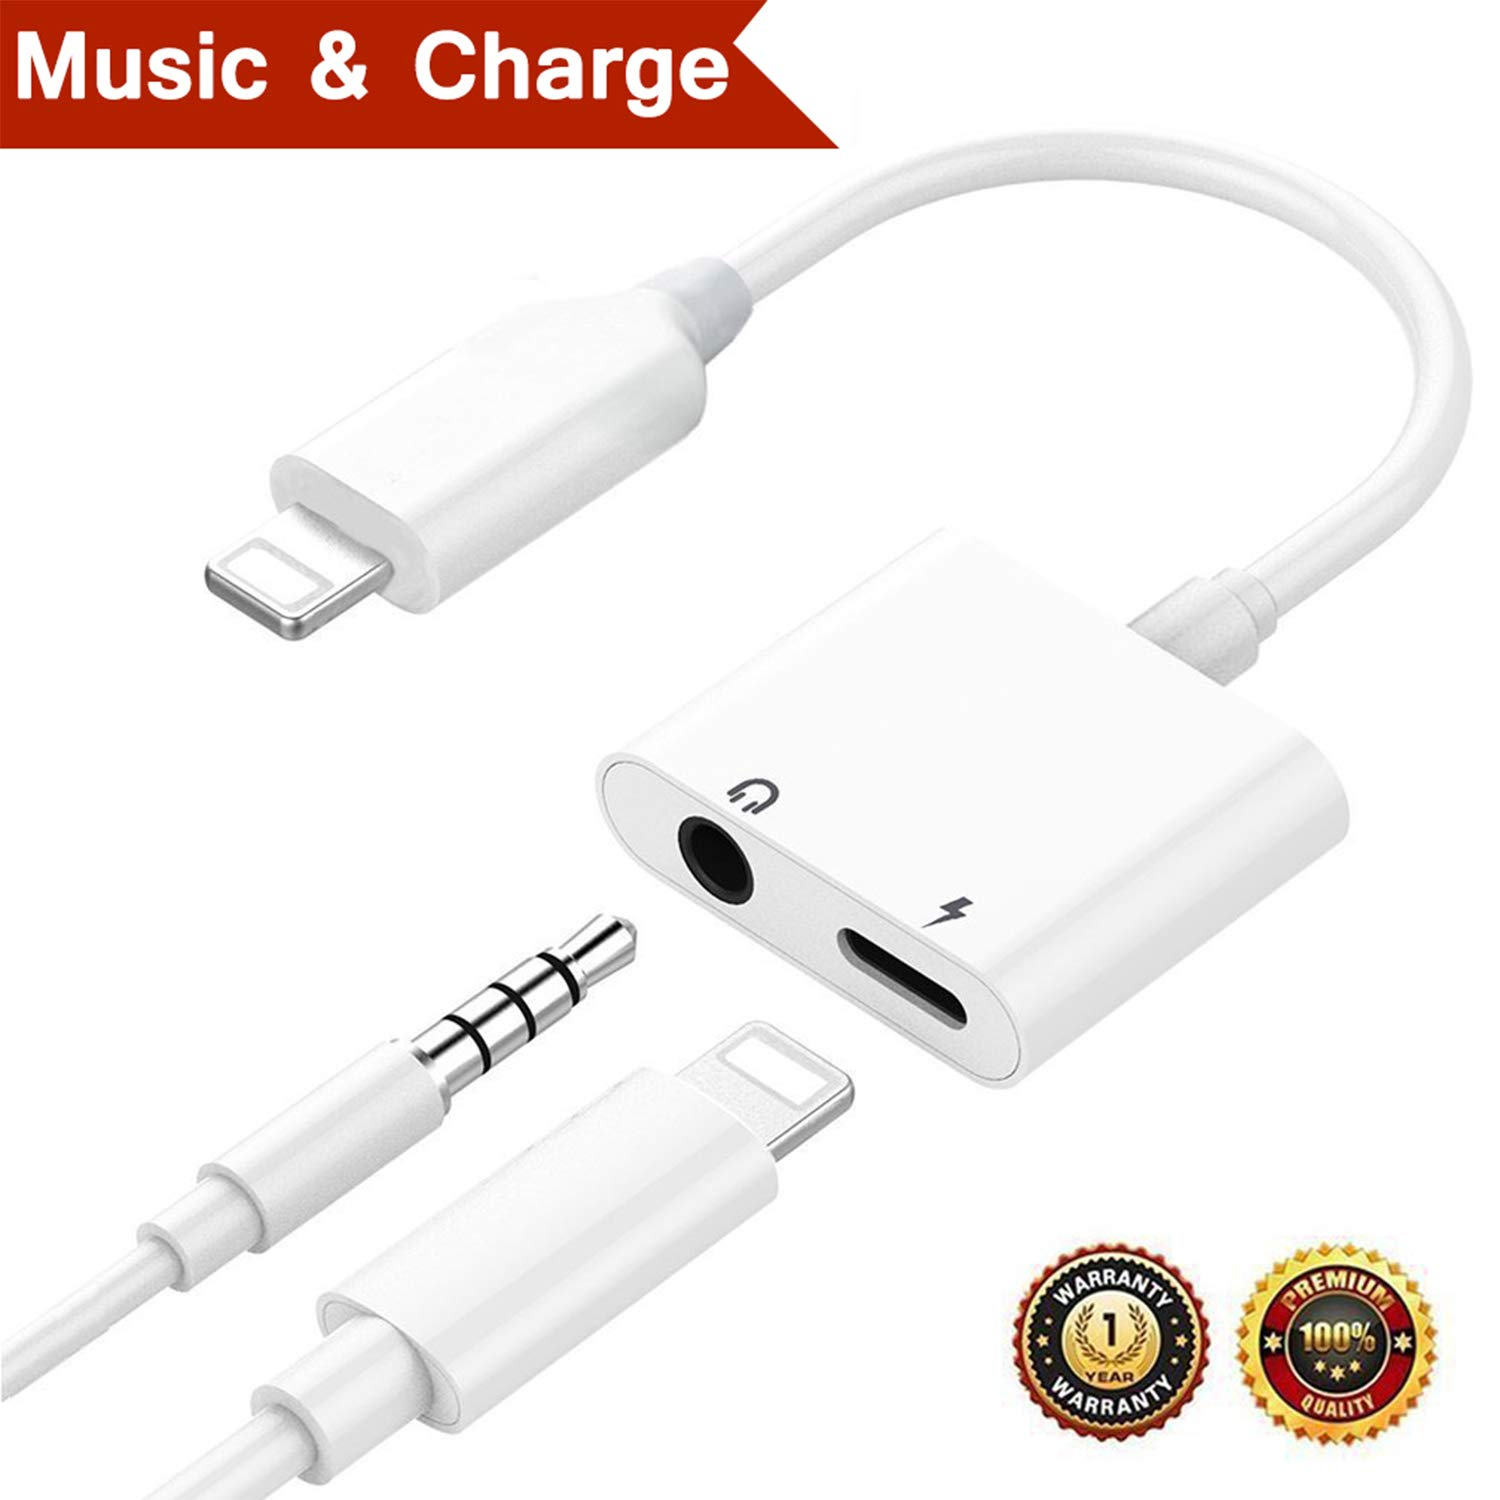 Pilloit Compatible Heahphone Lighting Jack Adapter Charger Cables Replacement iPhone iPhone 7/7Plus iPhone 8/8Plus iPhone X/10 Earphone Adaptor Audio Dongle Music 3.5mm Audio AUX Accessories-White